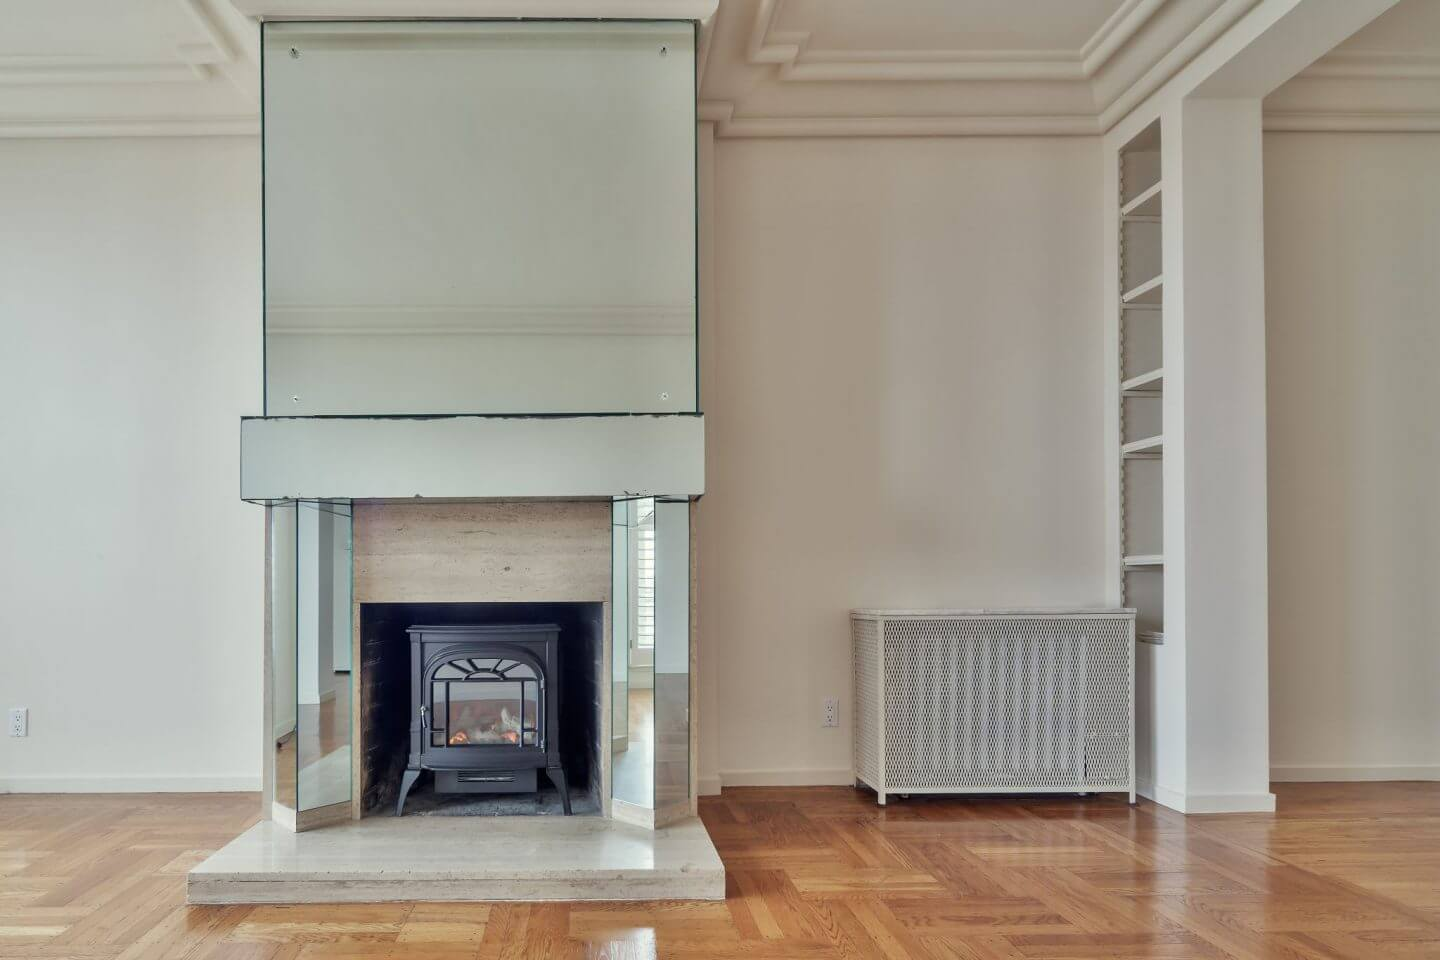 Home radiator and fireplace